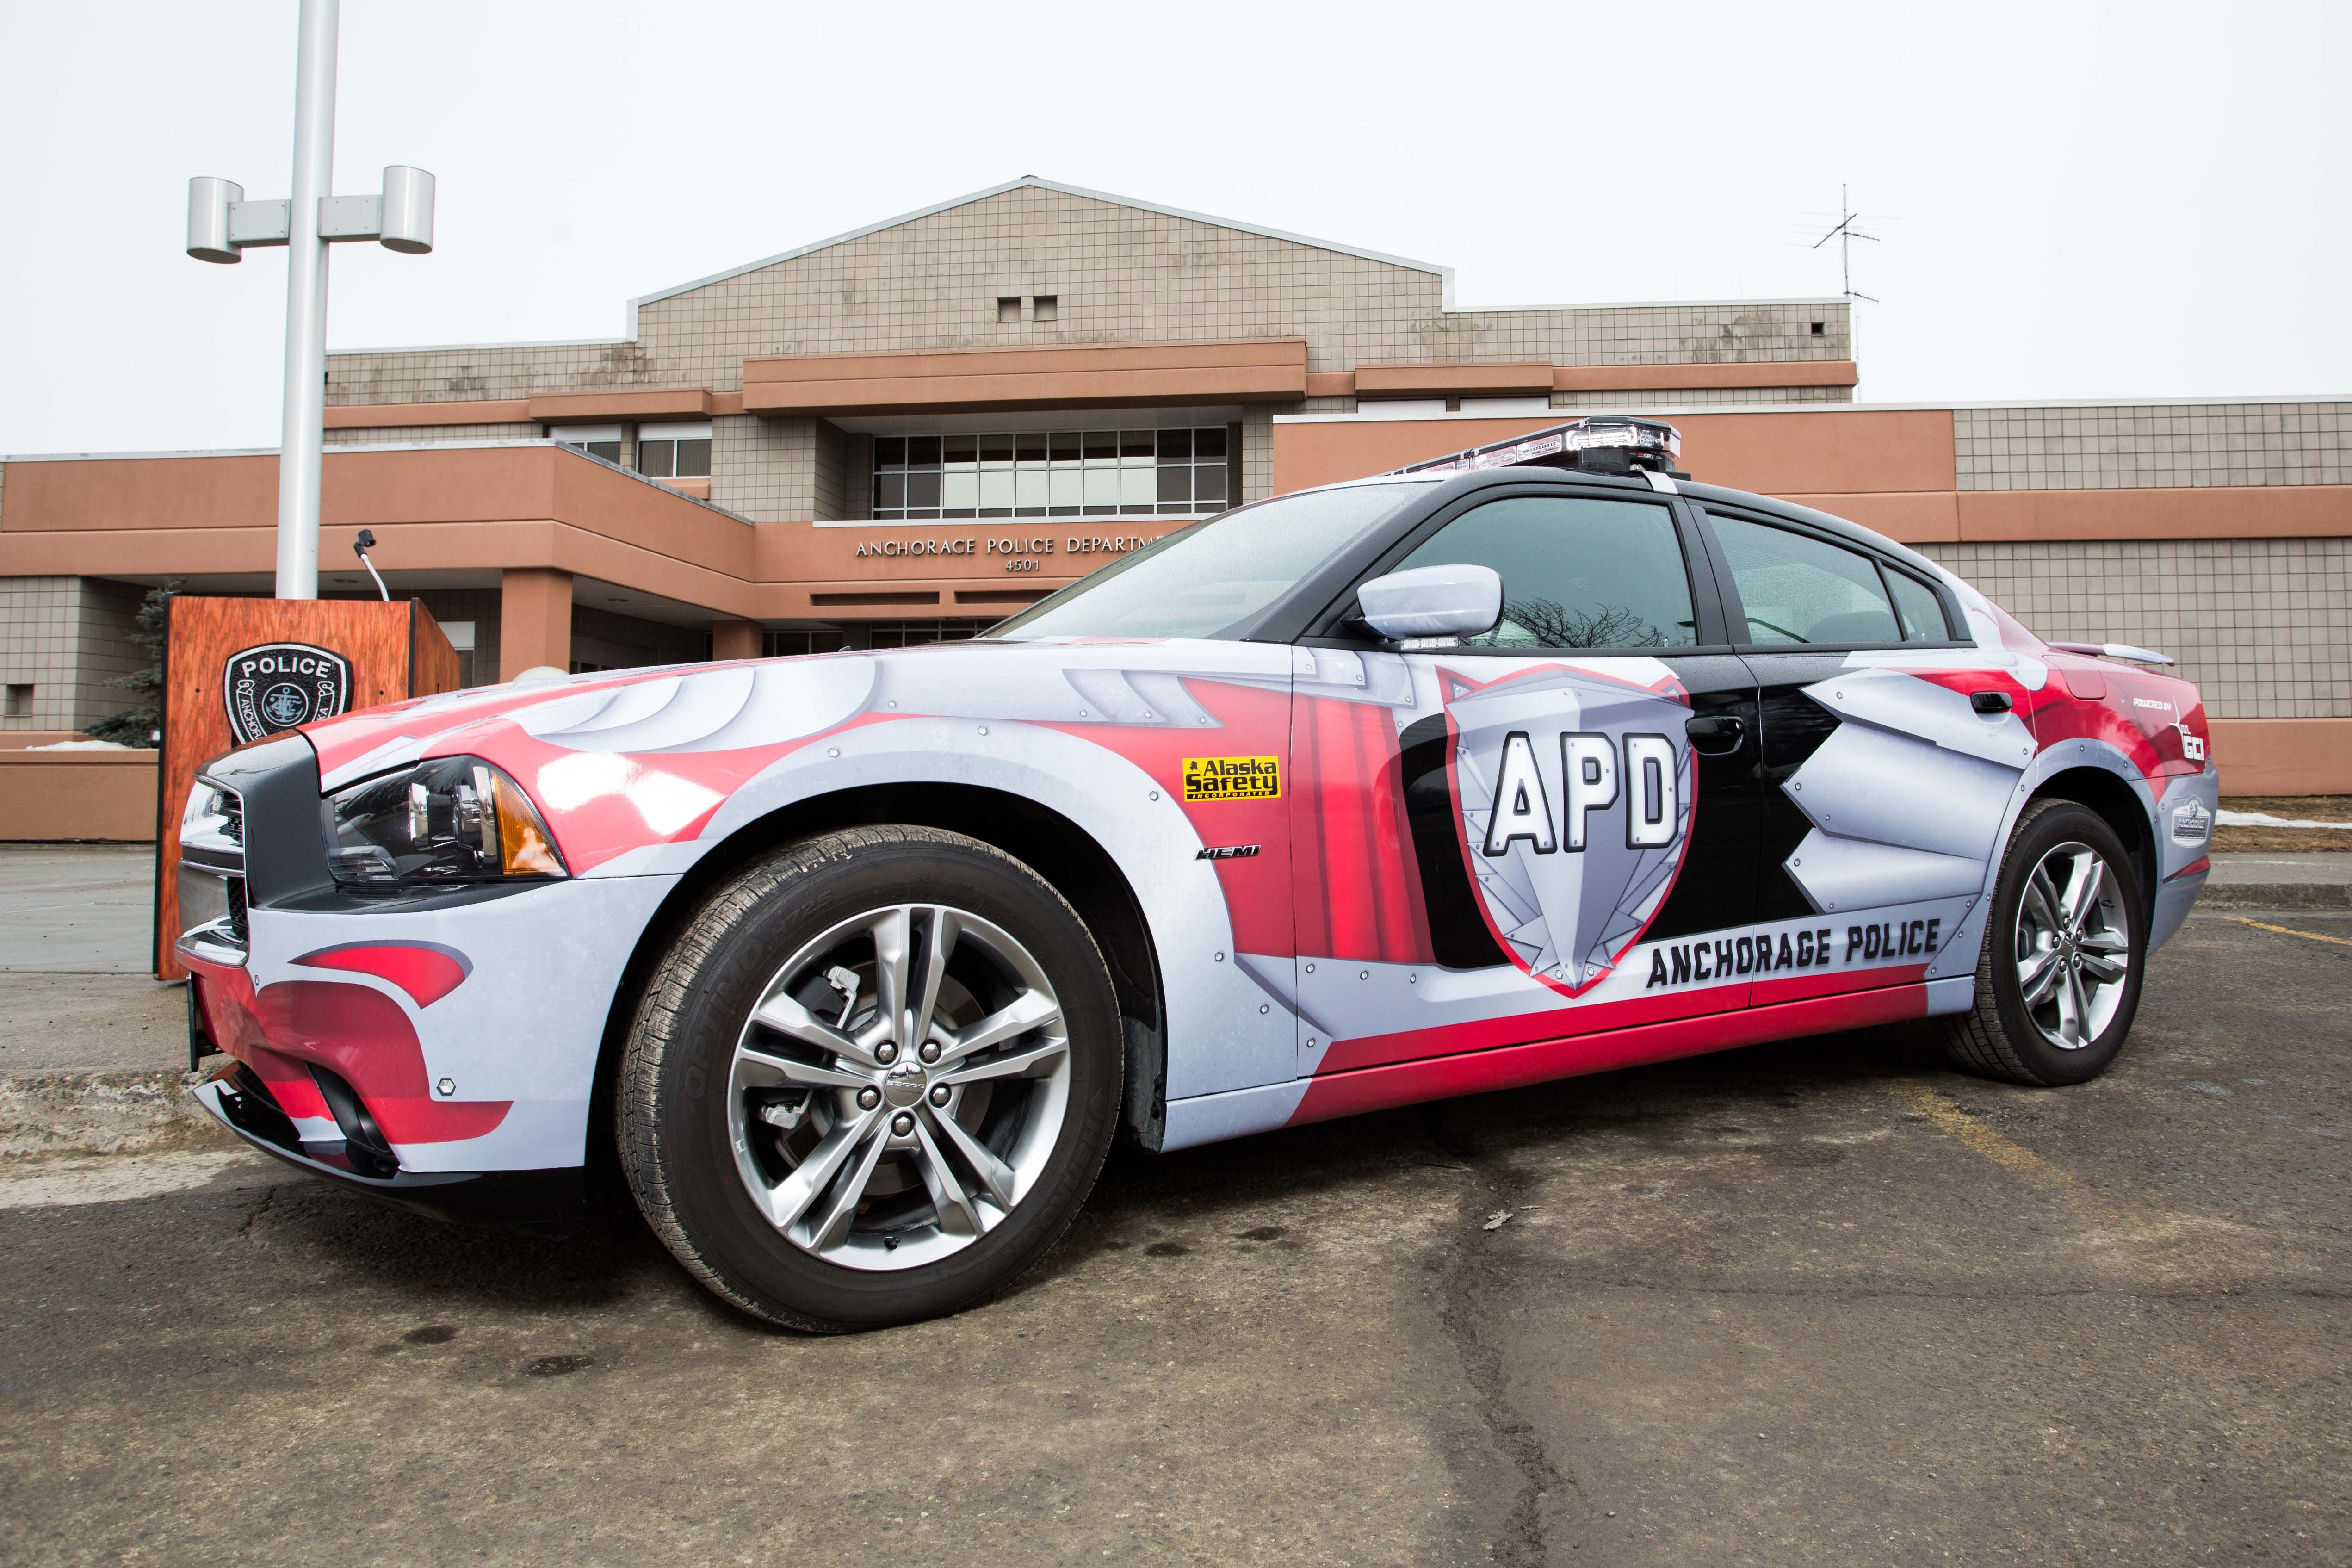 New Dodge Charger Police Cruiser For Anchorage Police Department Politie